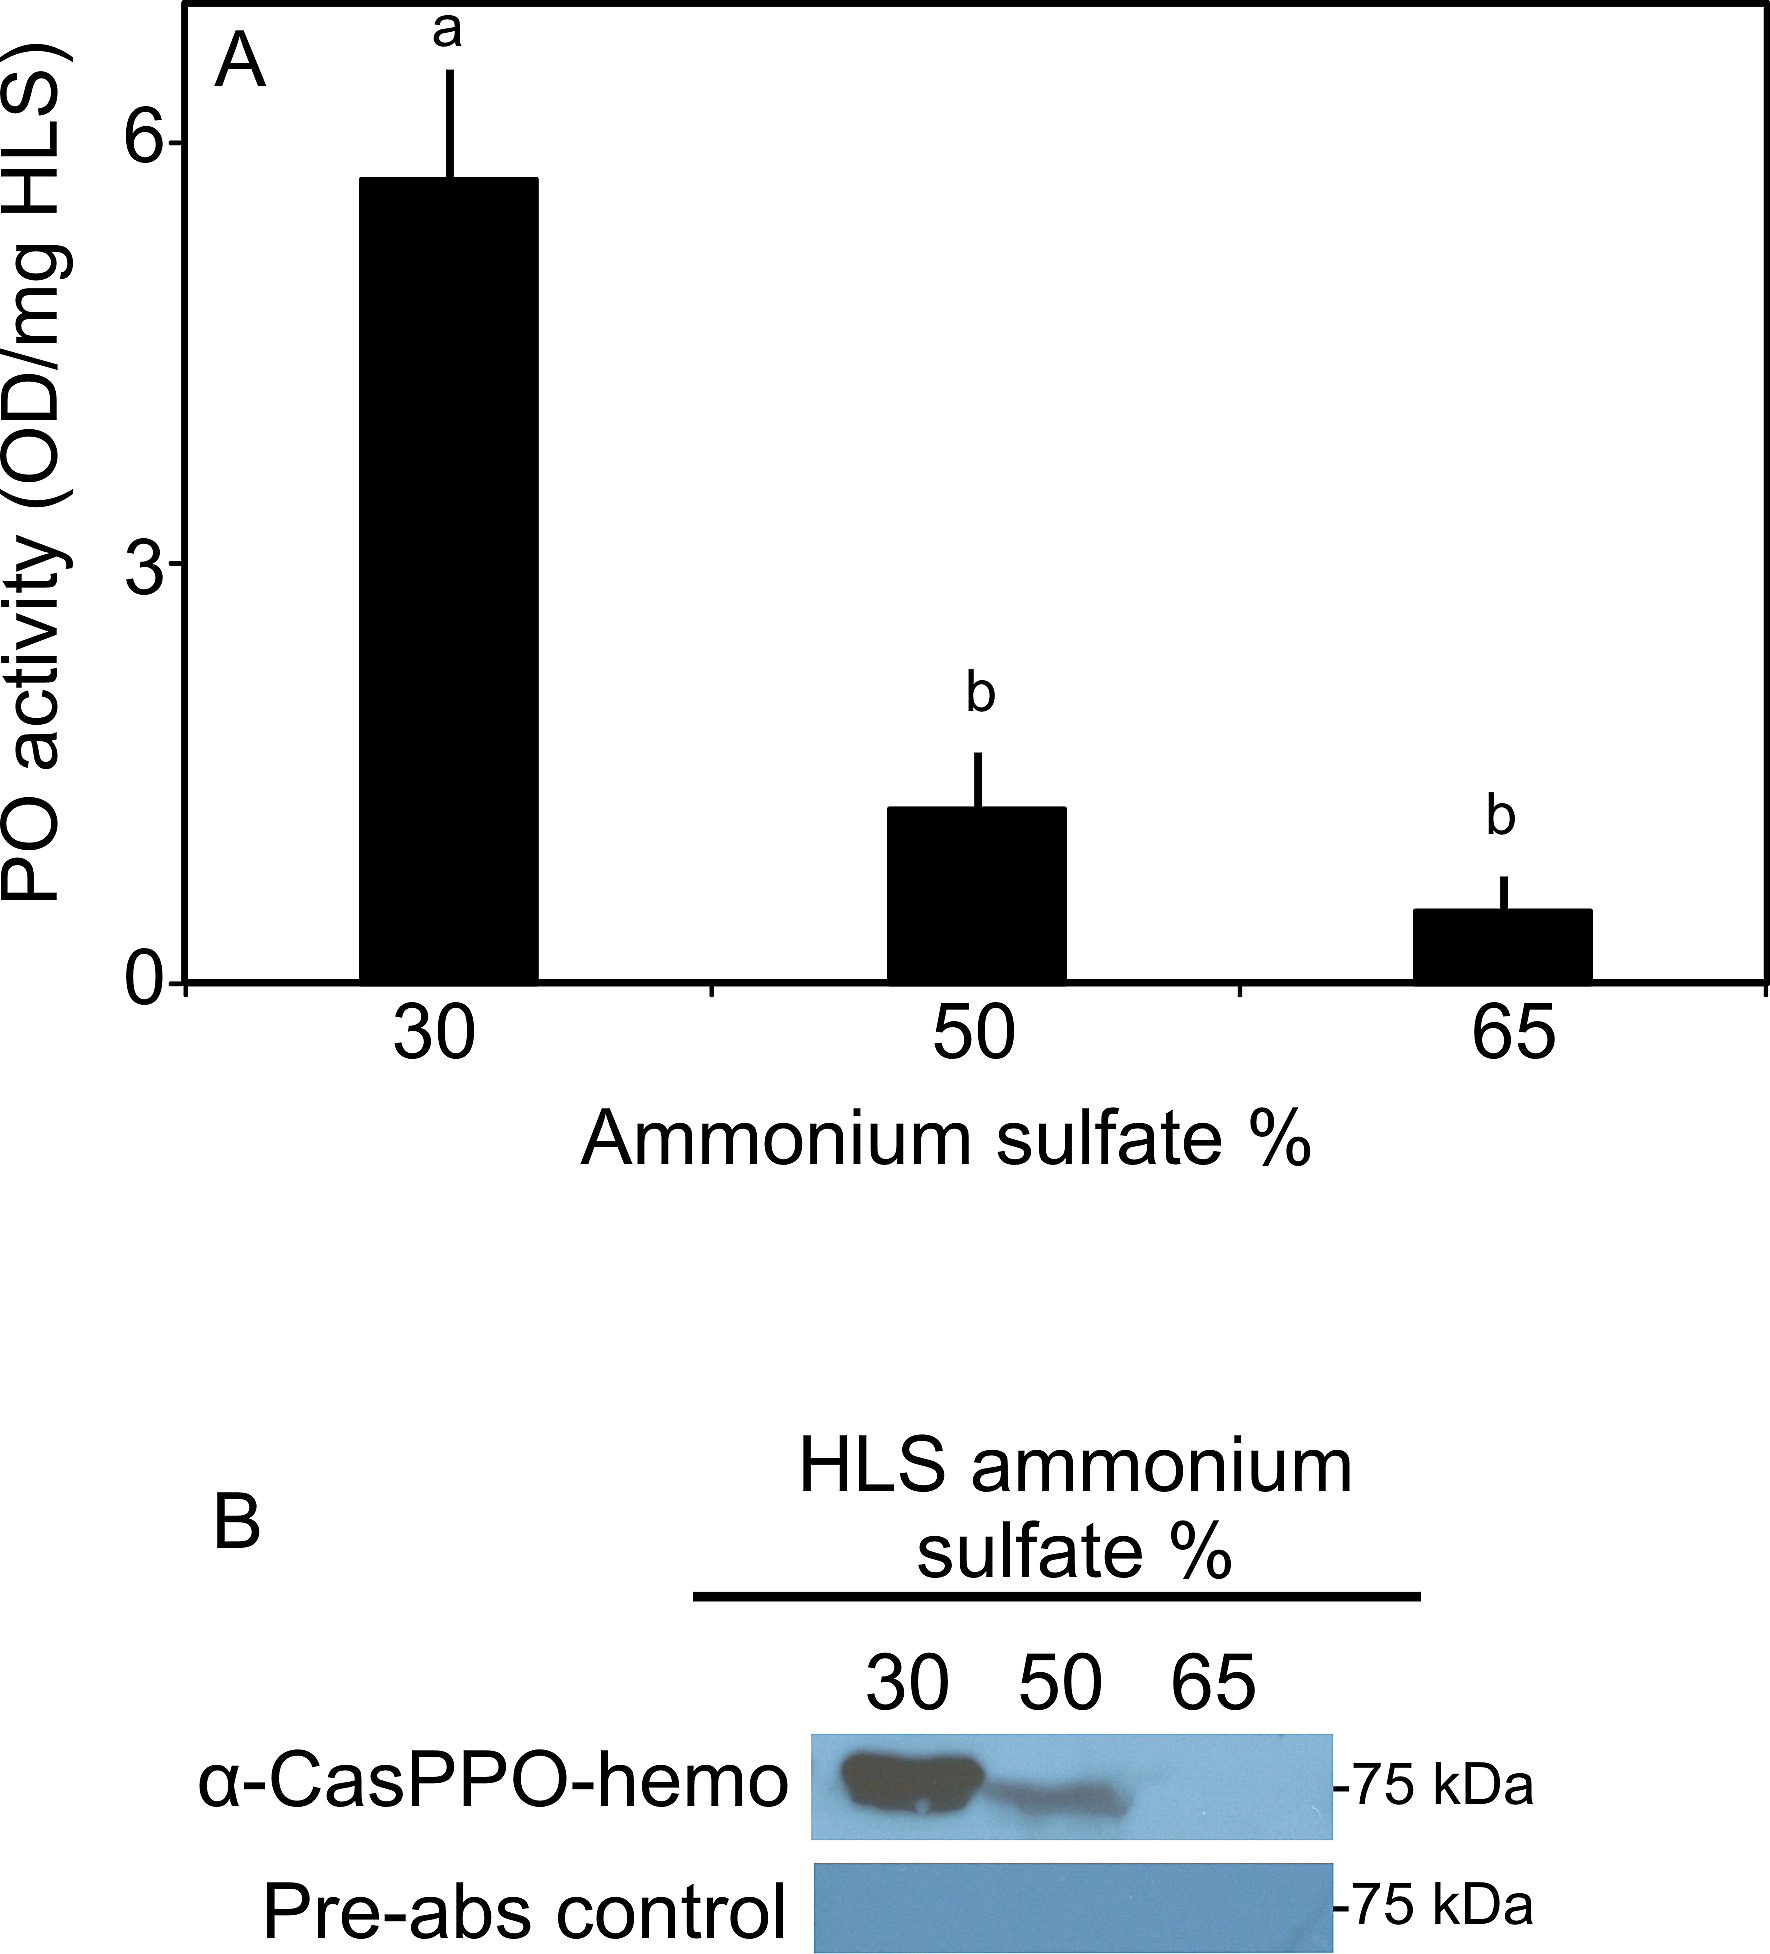 The Involvement of Hemocyte Prophenoloxidase in the Shell Hardening